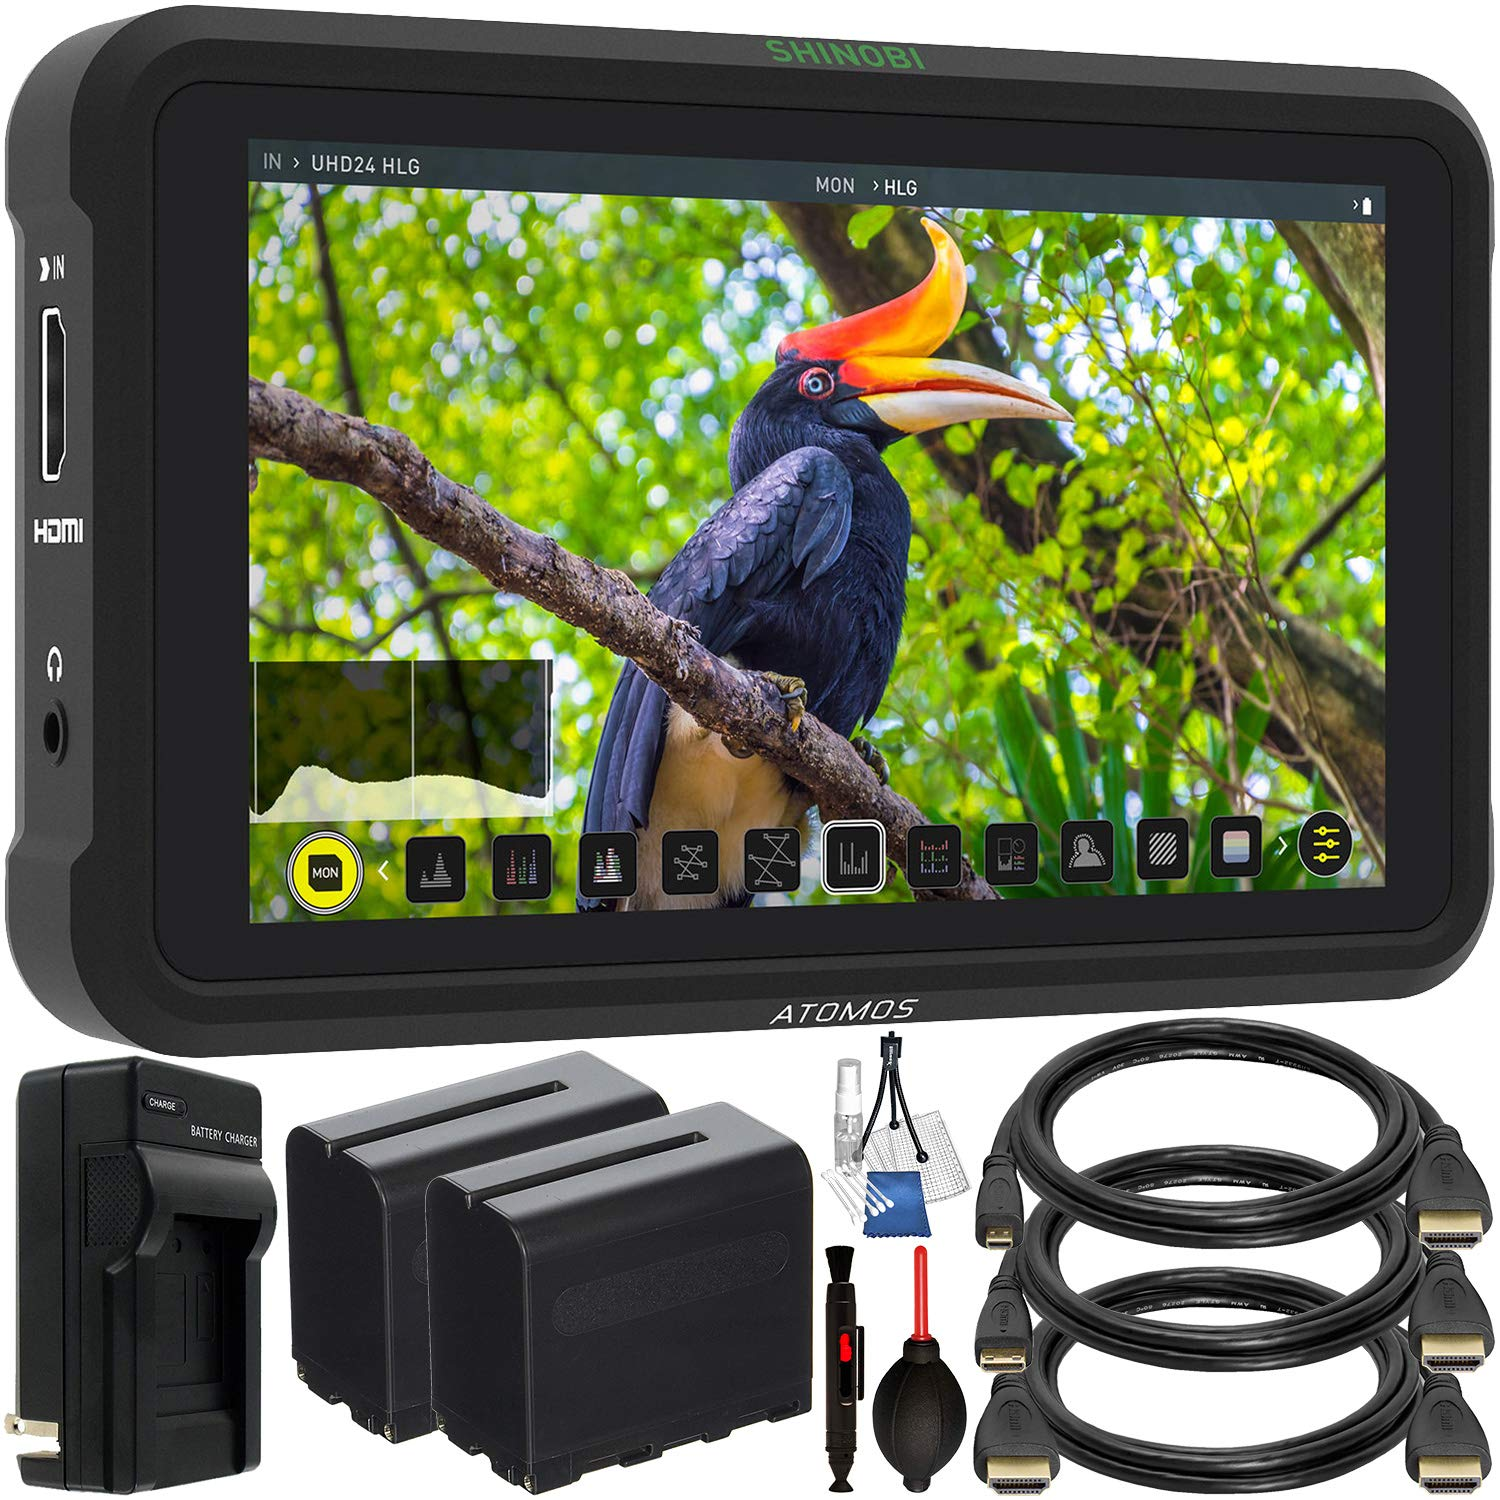 Atomos Shinobi 5.2'' 4K HDMI Monitor with Starter Accessory Bundle - Includes: 2X Extended Life NP-F975 L-Series Batteries with Charger, Standard, Mini & Micro HDMI Cables, Starter Cleaning Kit & More by Atomos